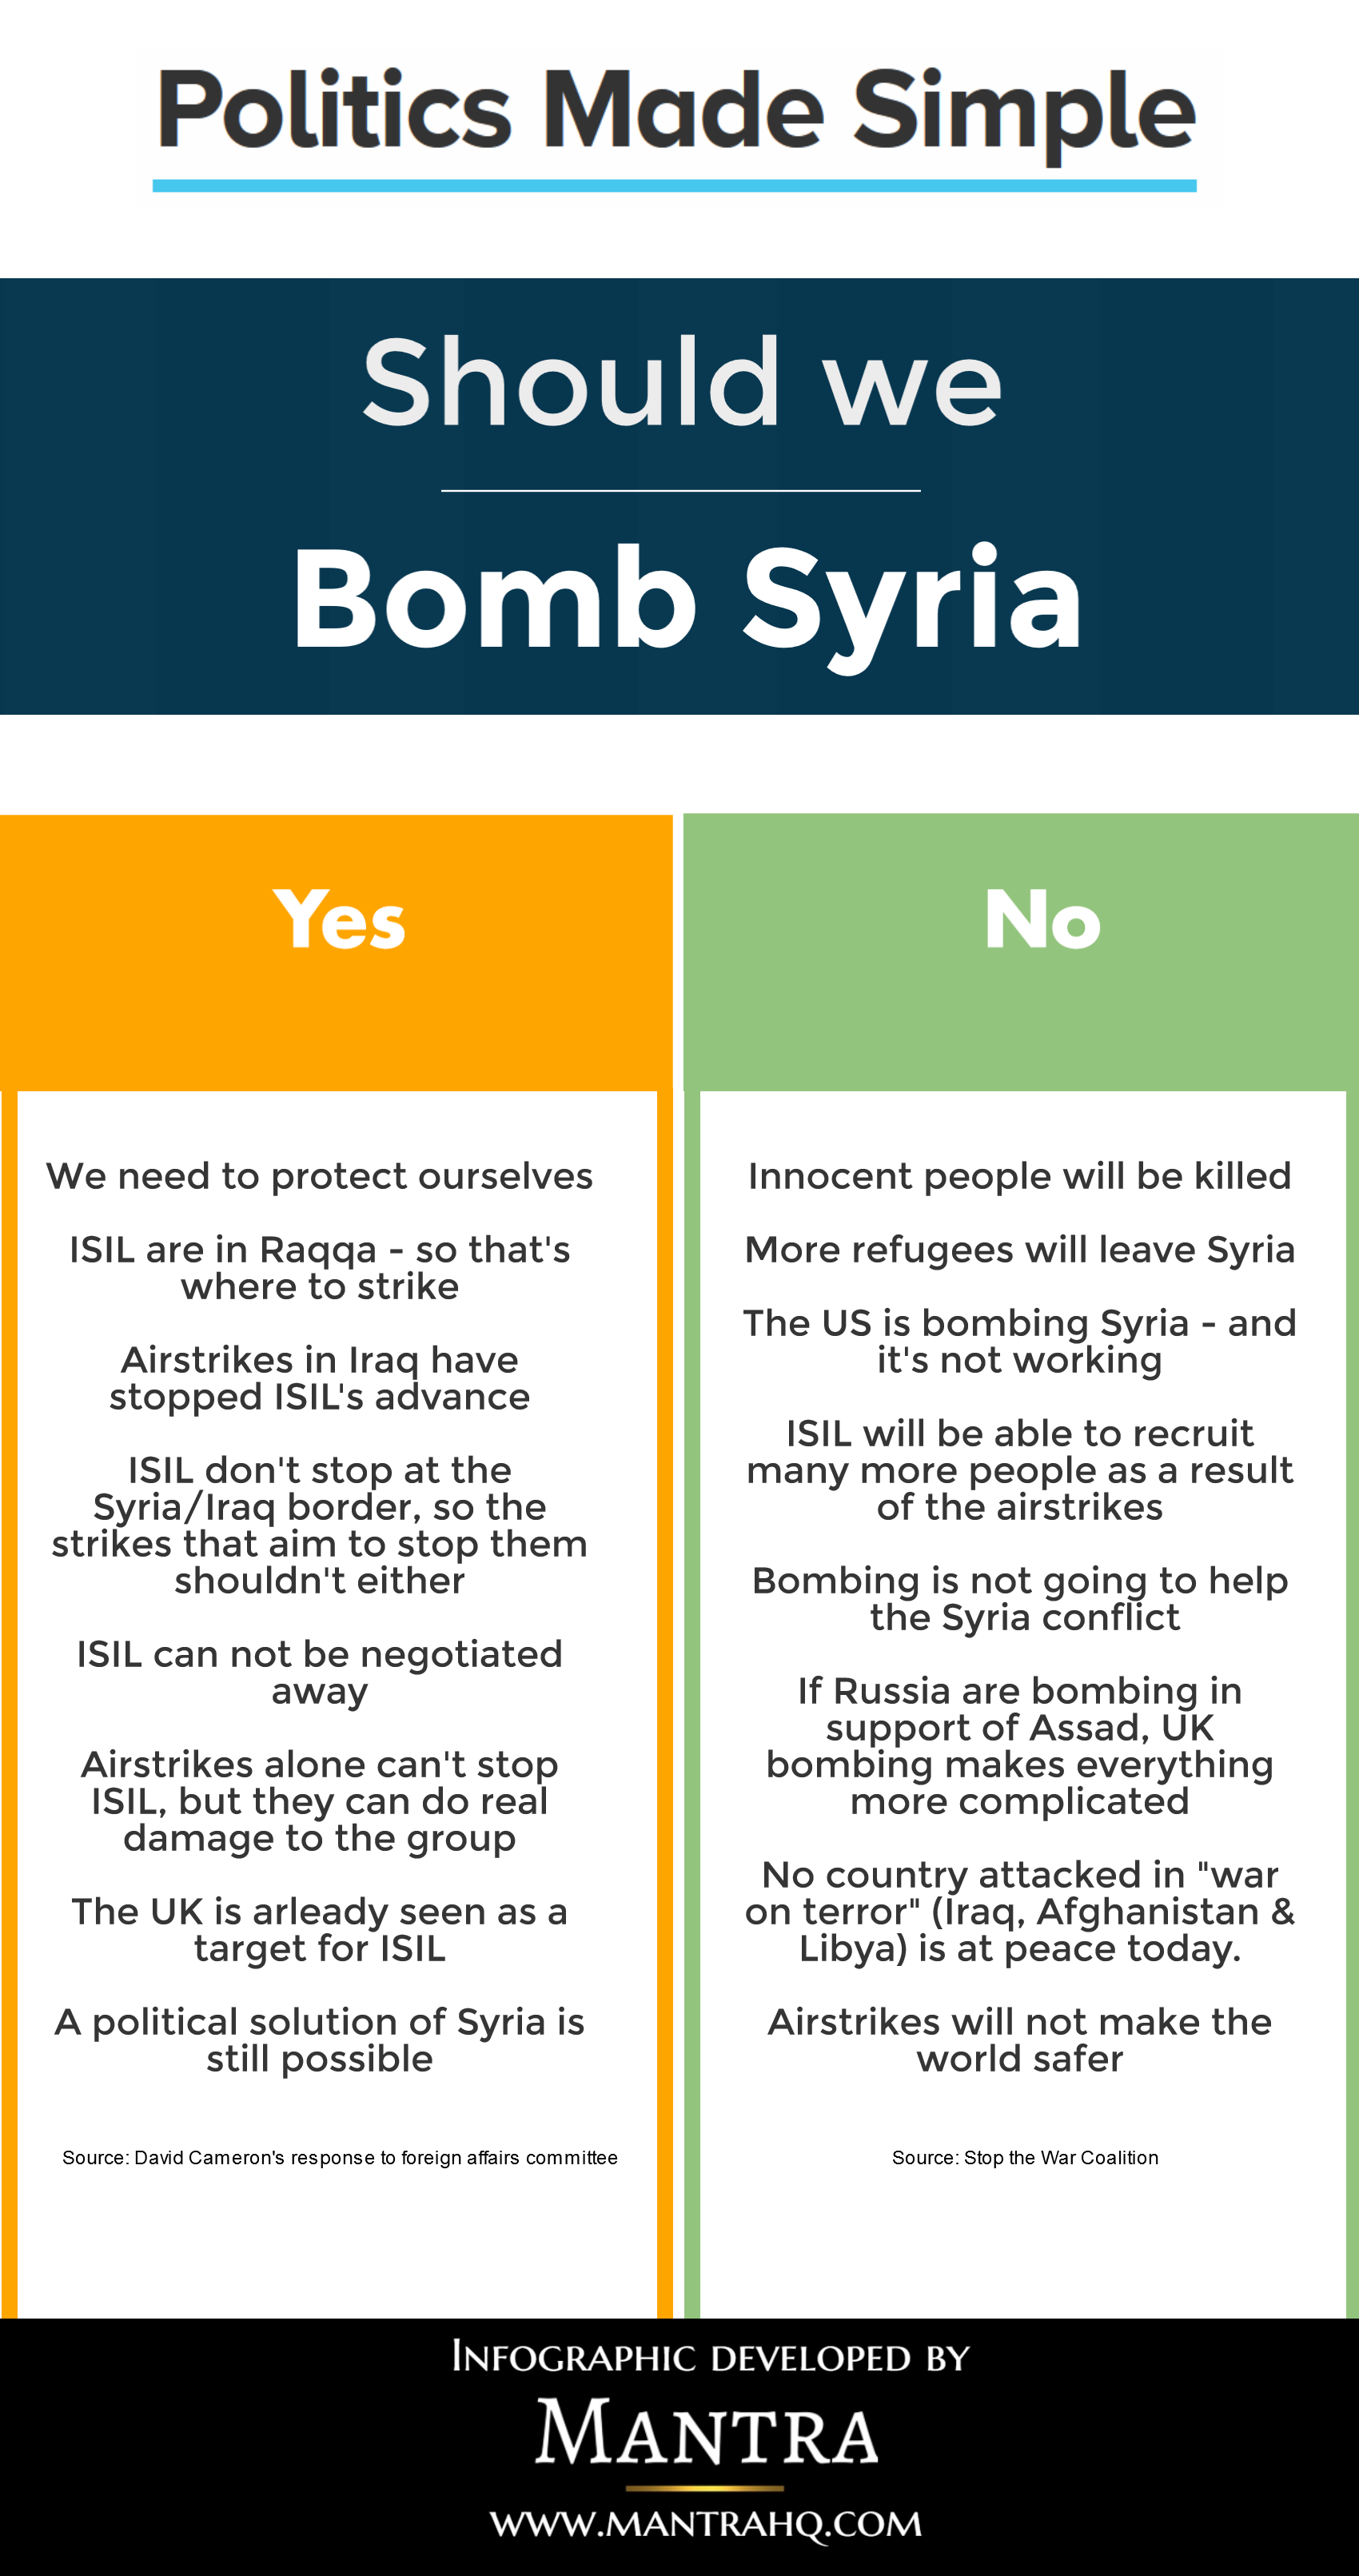 Should we bomb Syria?